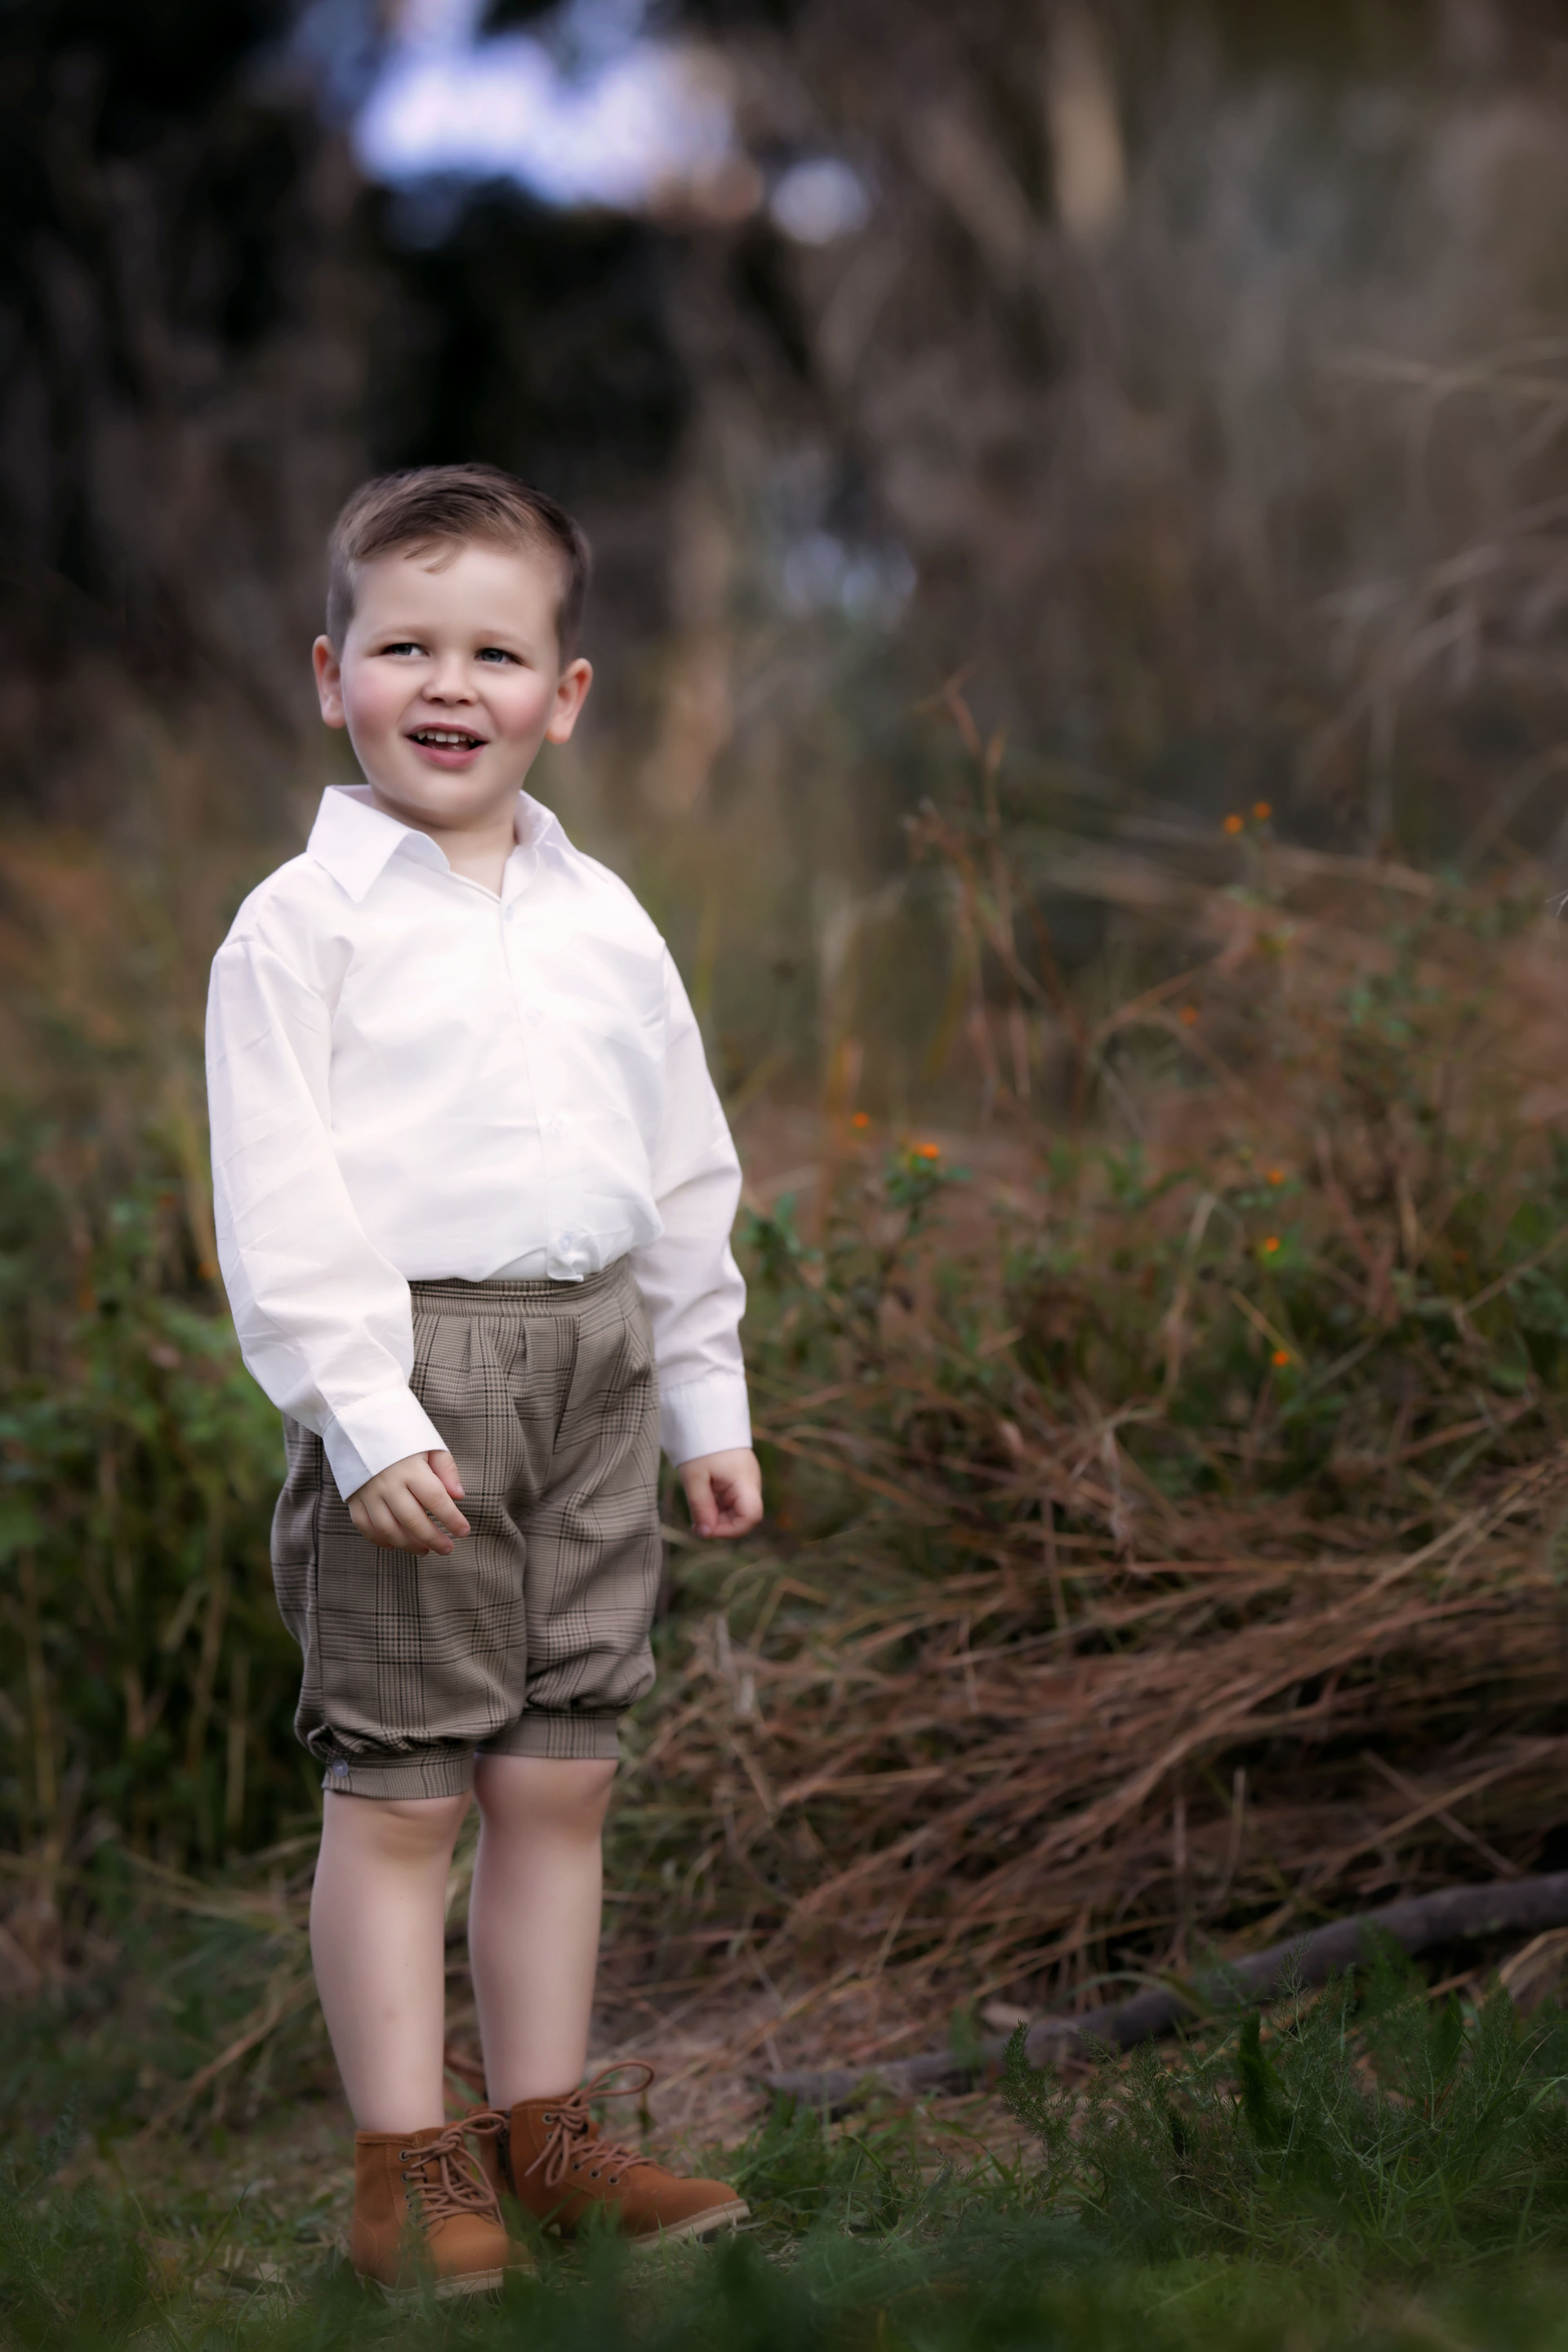 boys & kids photos in outdoor settings